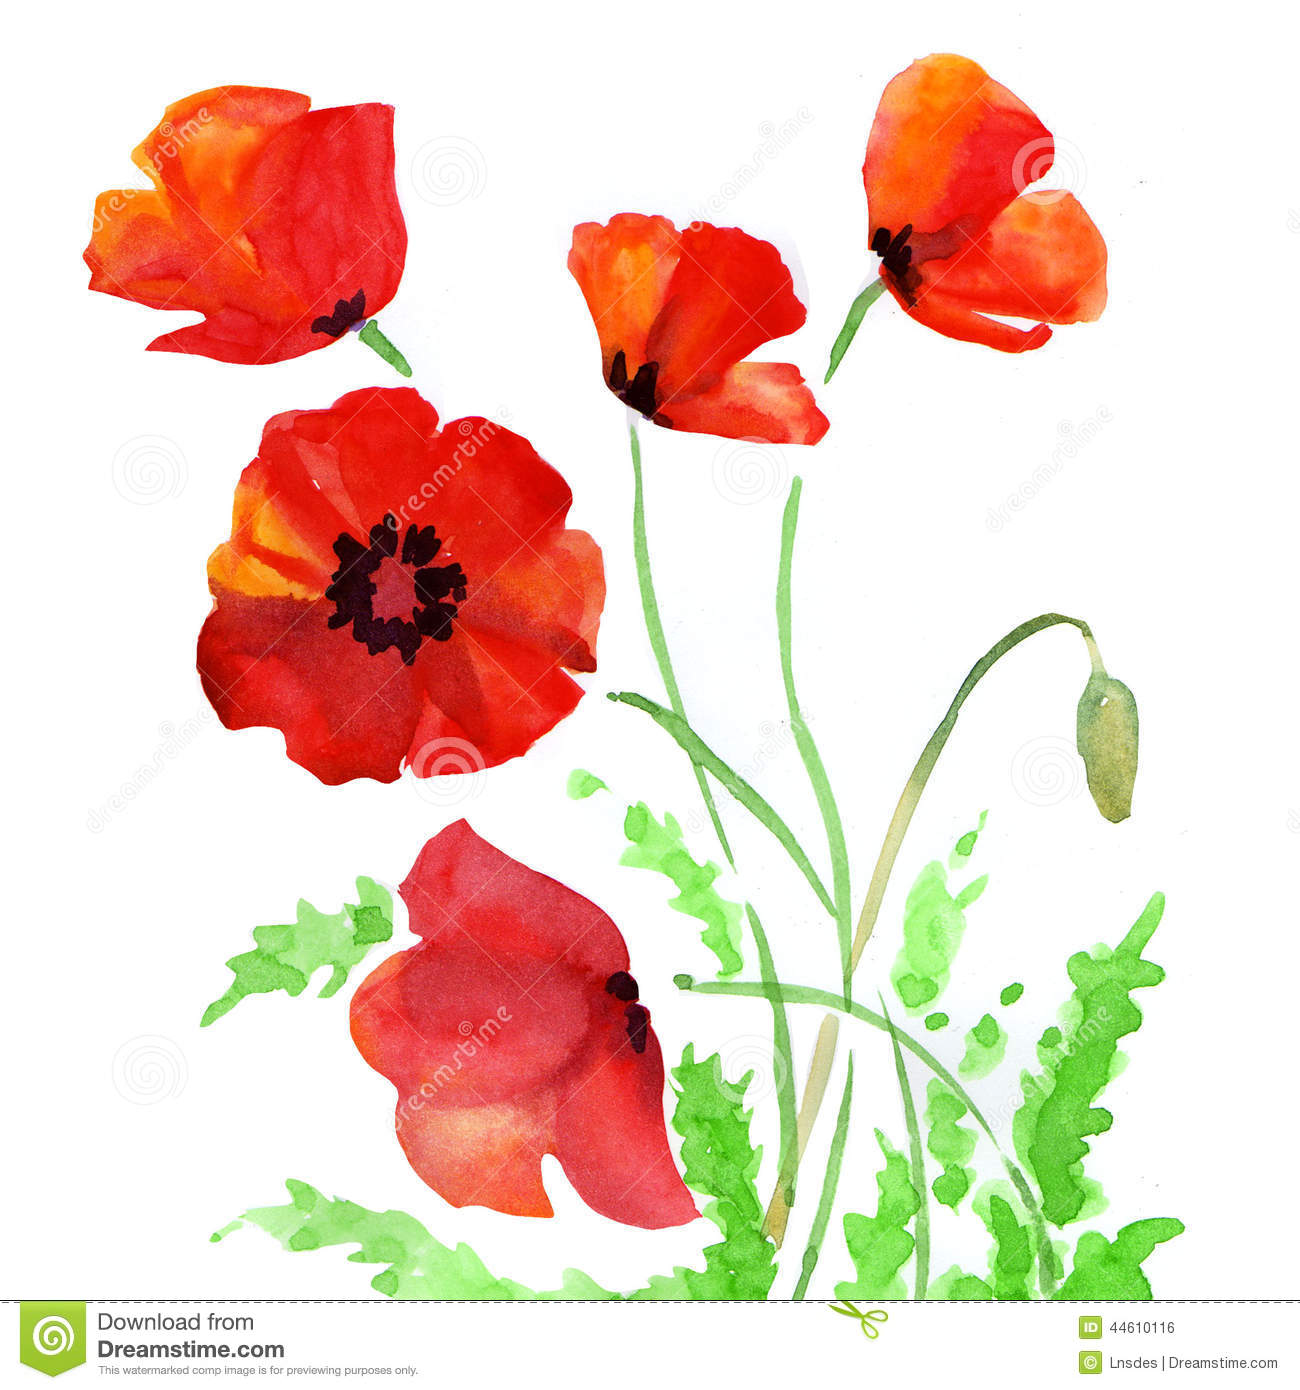 Poppy flowers watercolor illustration stock illustration download comp mightylinksfo